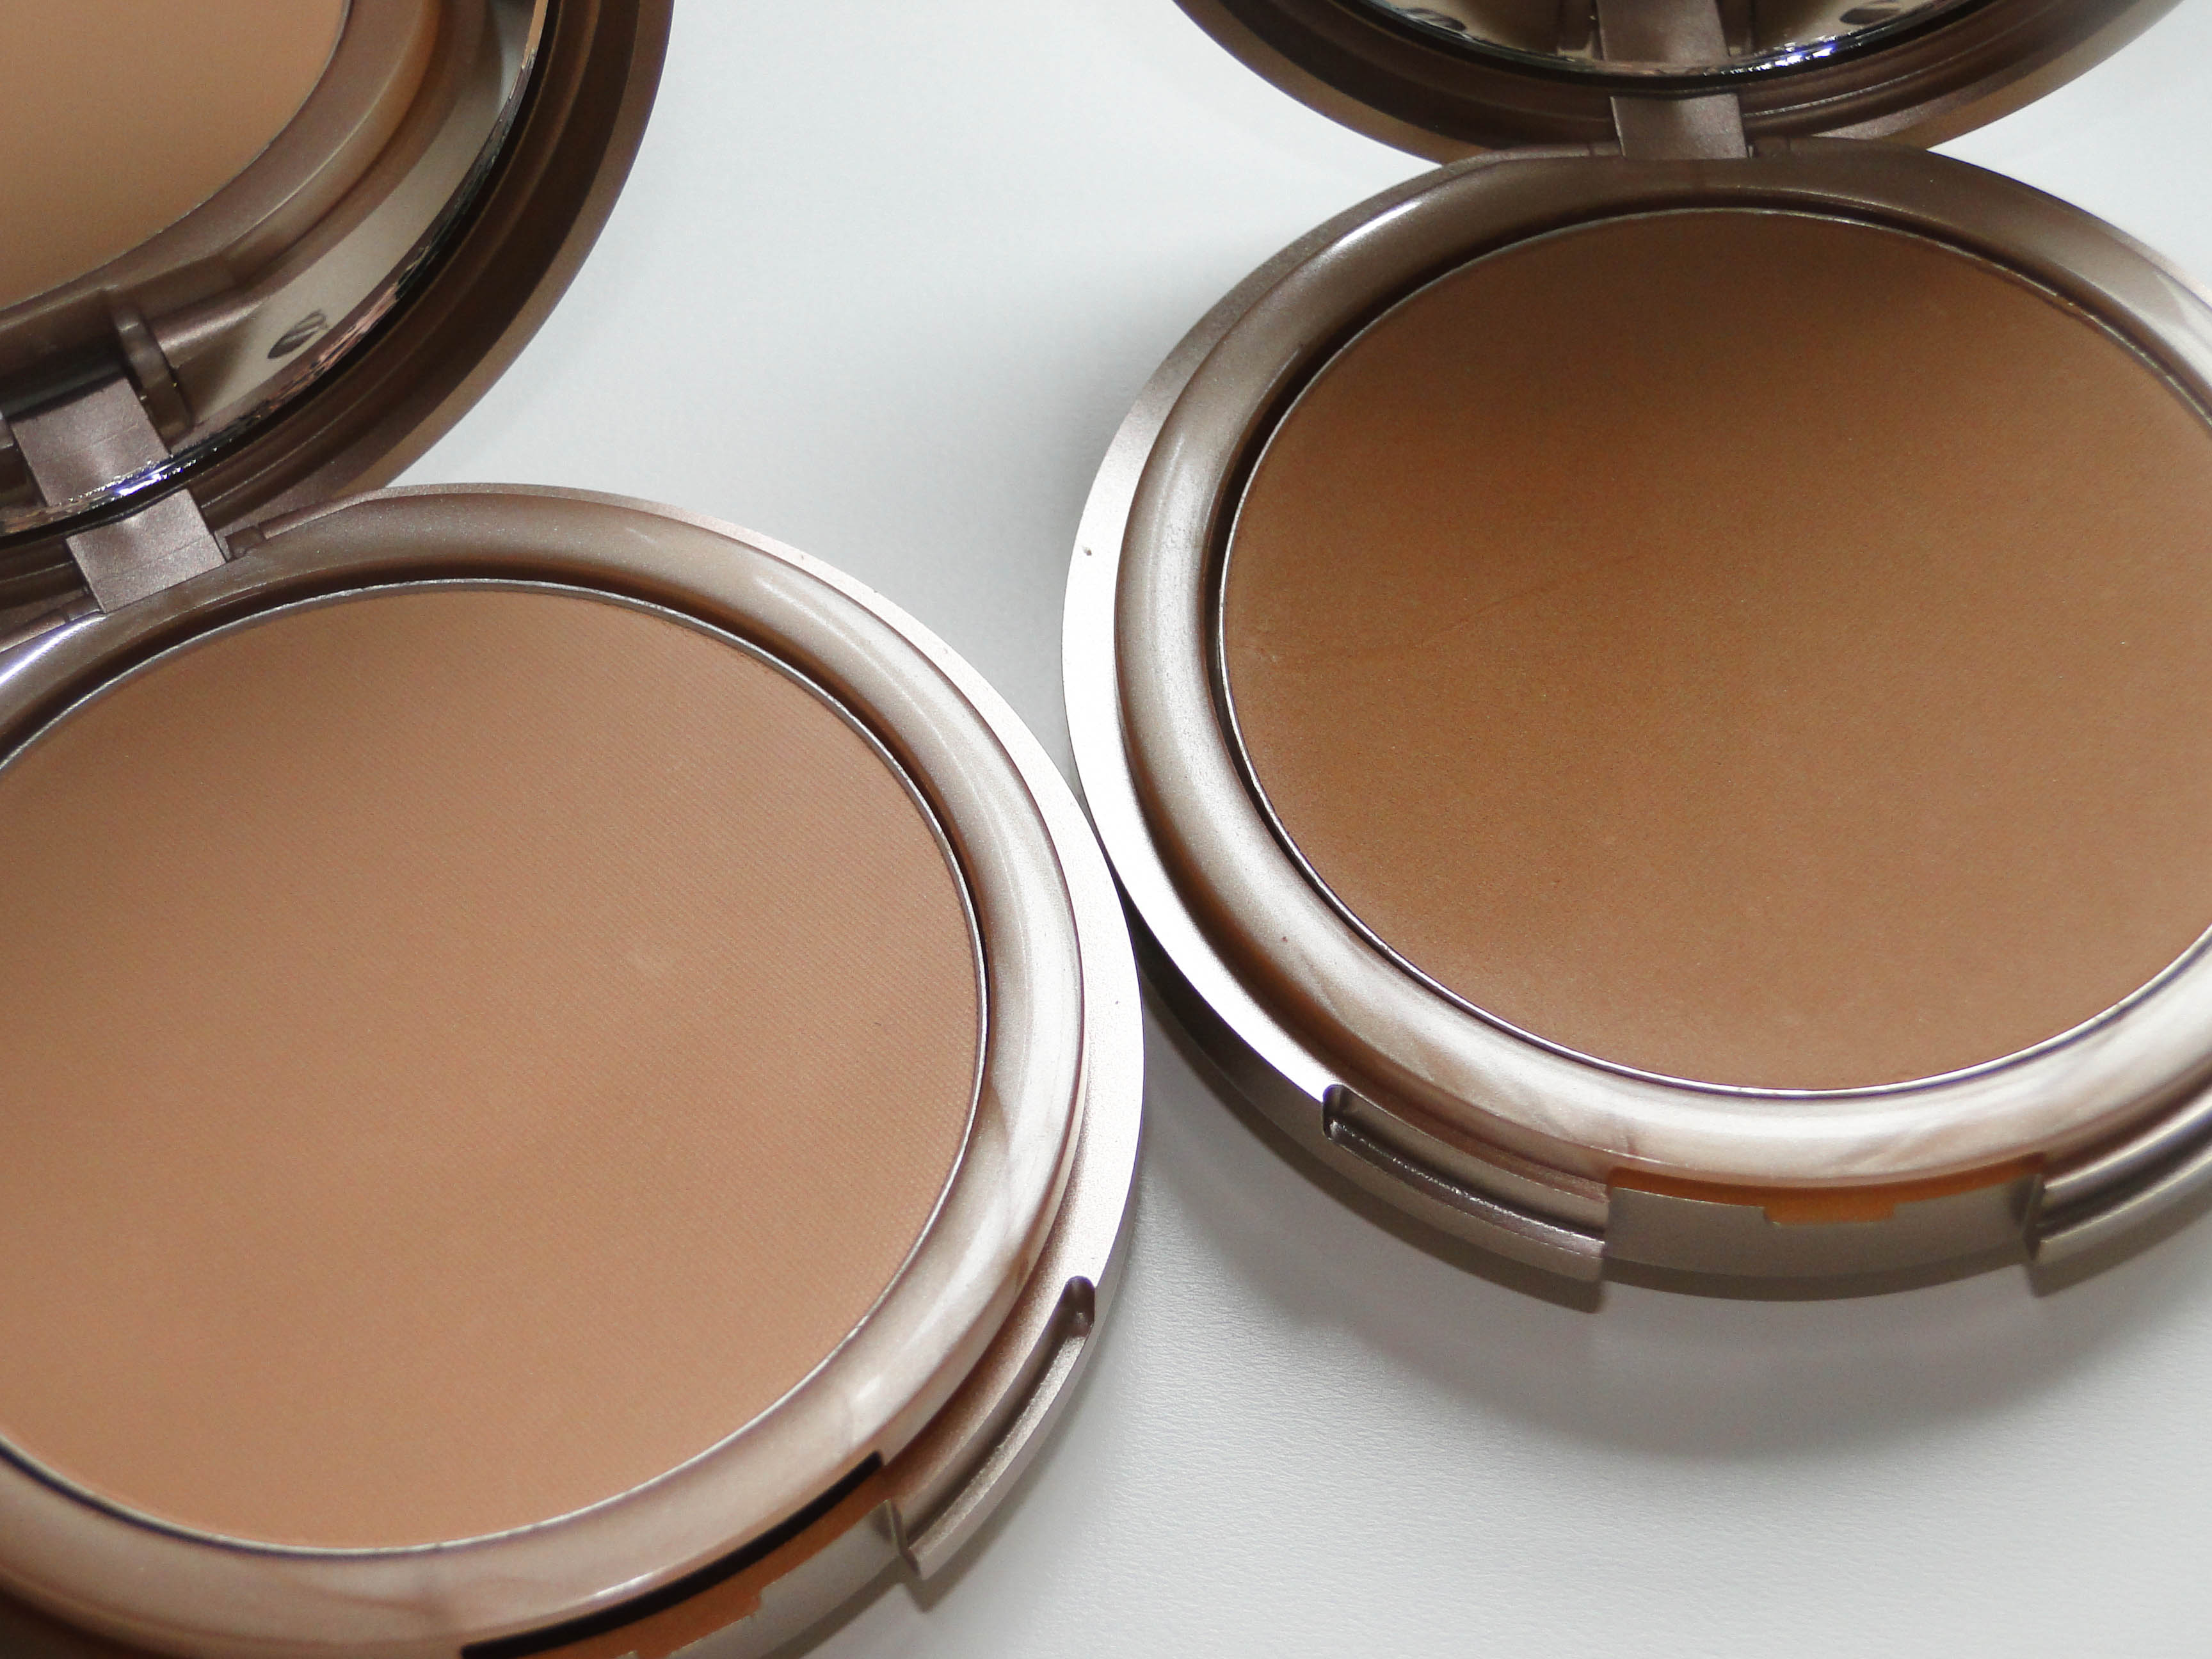 Kiko Life in Rio Sunproof Powder Foundation 1